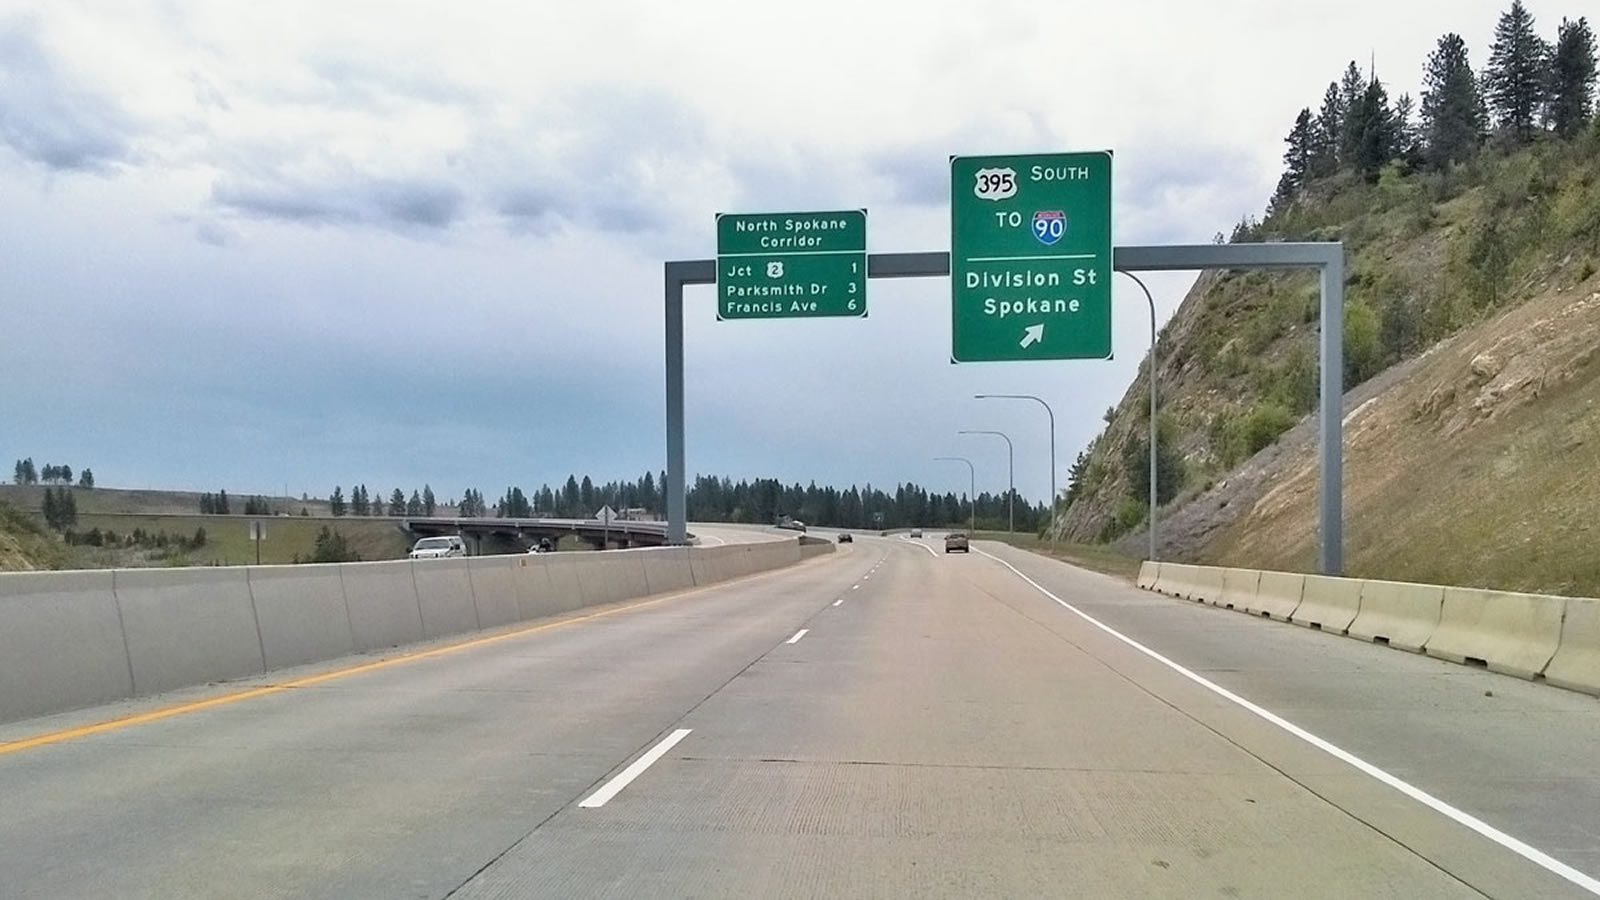 <h3>North Spokane Corridor, Washington</h3><h4>Cost: $1.5 billion</h4><p>It's a boondoggle because: This proposed highway will slice through a historic Spokane neighborhood and take money from other transportation priorities, in order to take just minutes off the drive to low-density suburbs north of the city</p><em>jdubman, CC-BY-SA-3.0</em>